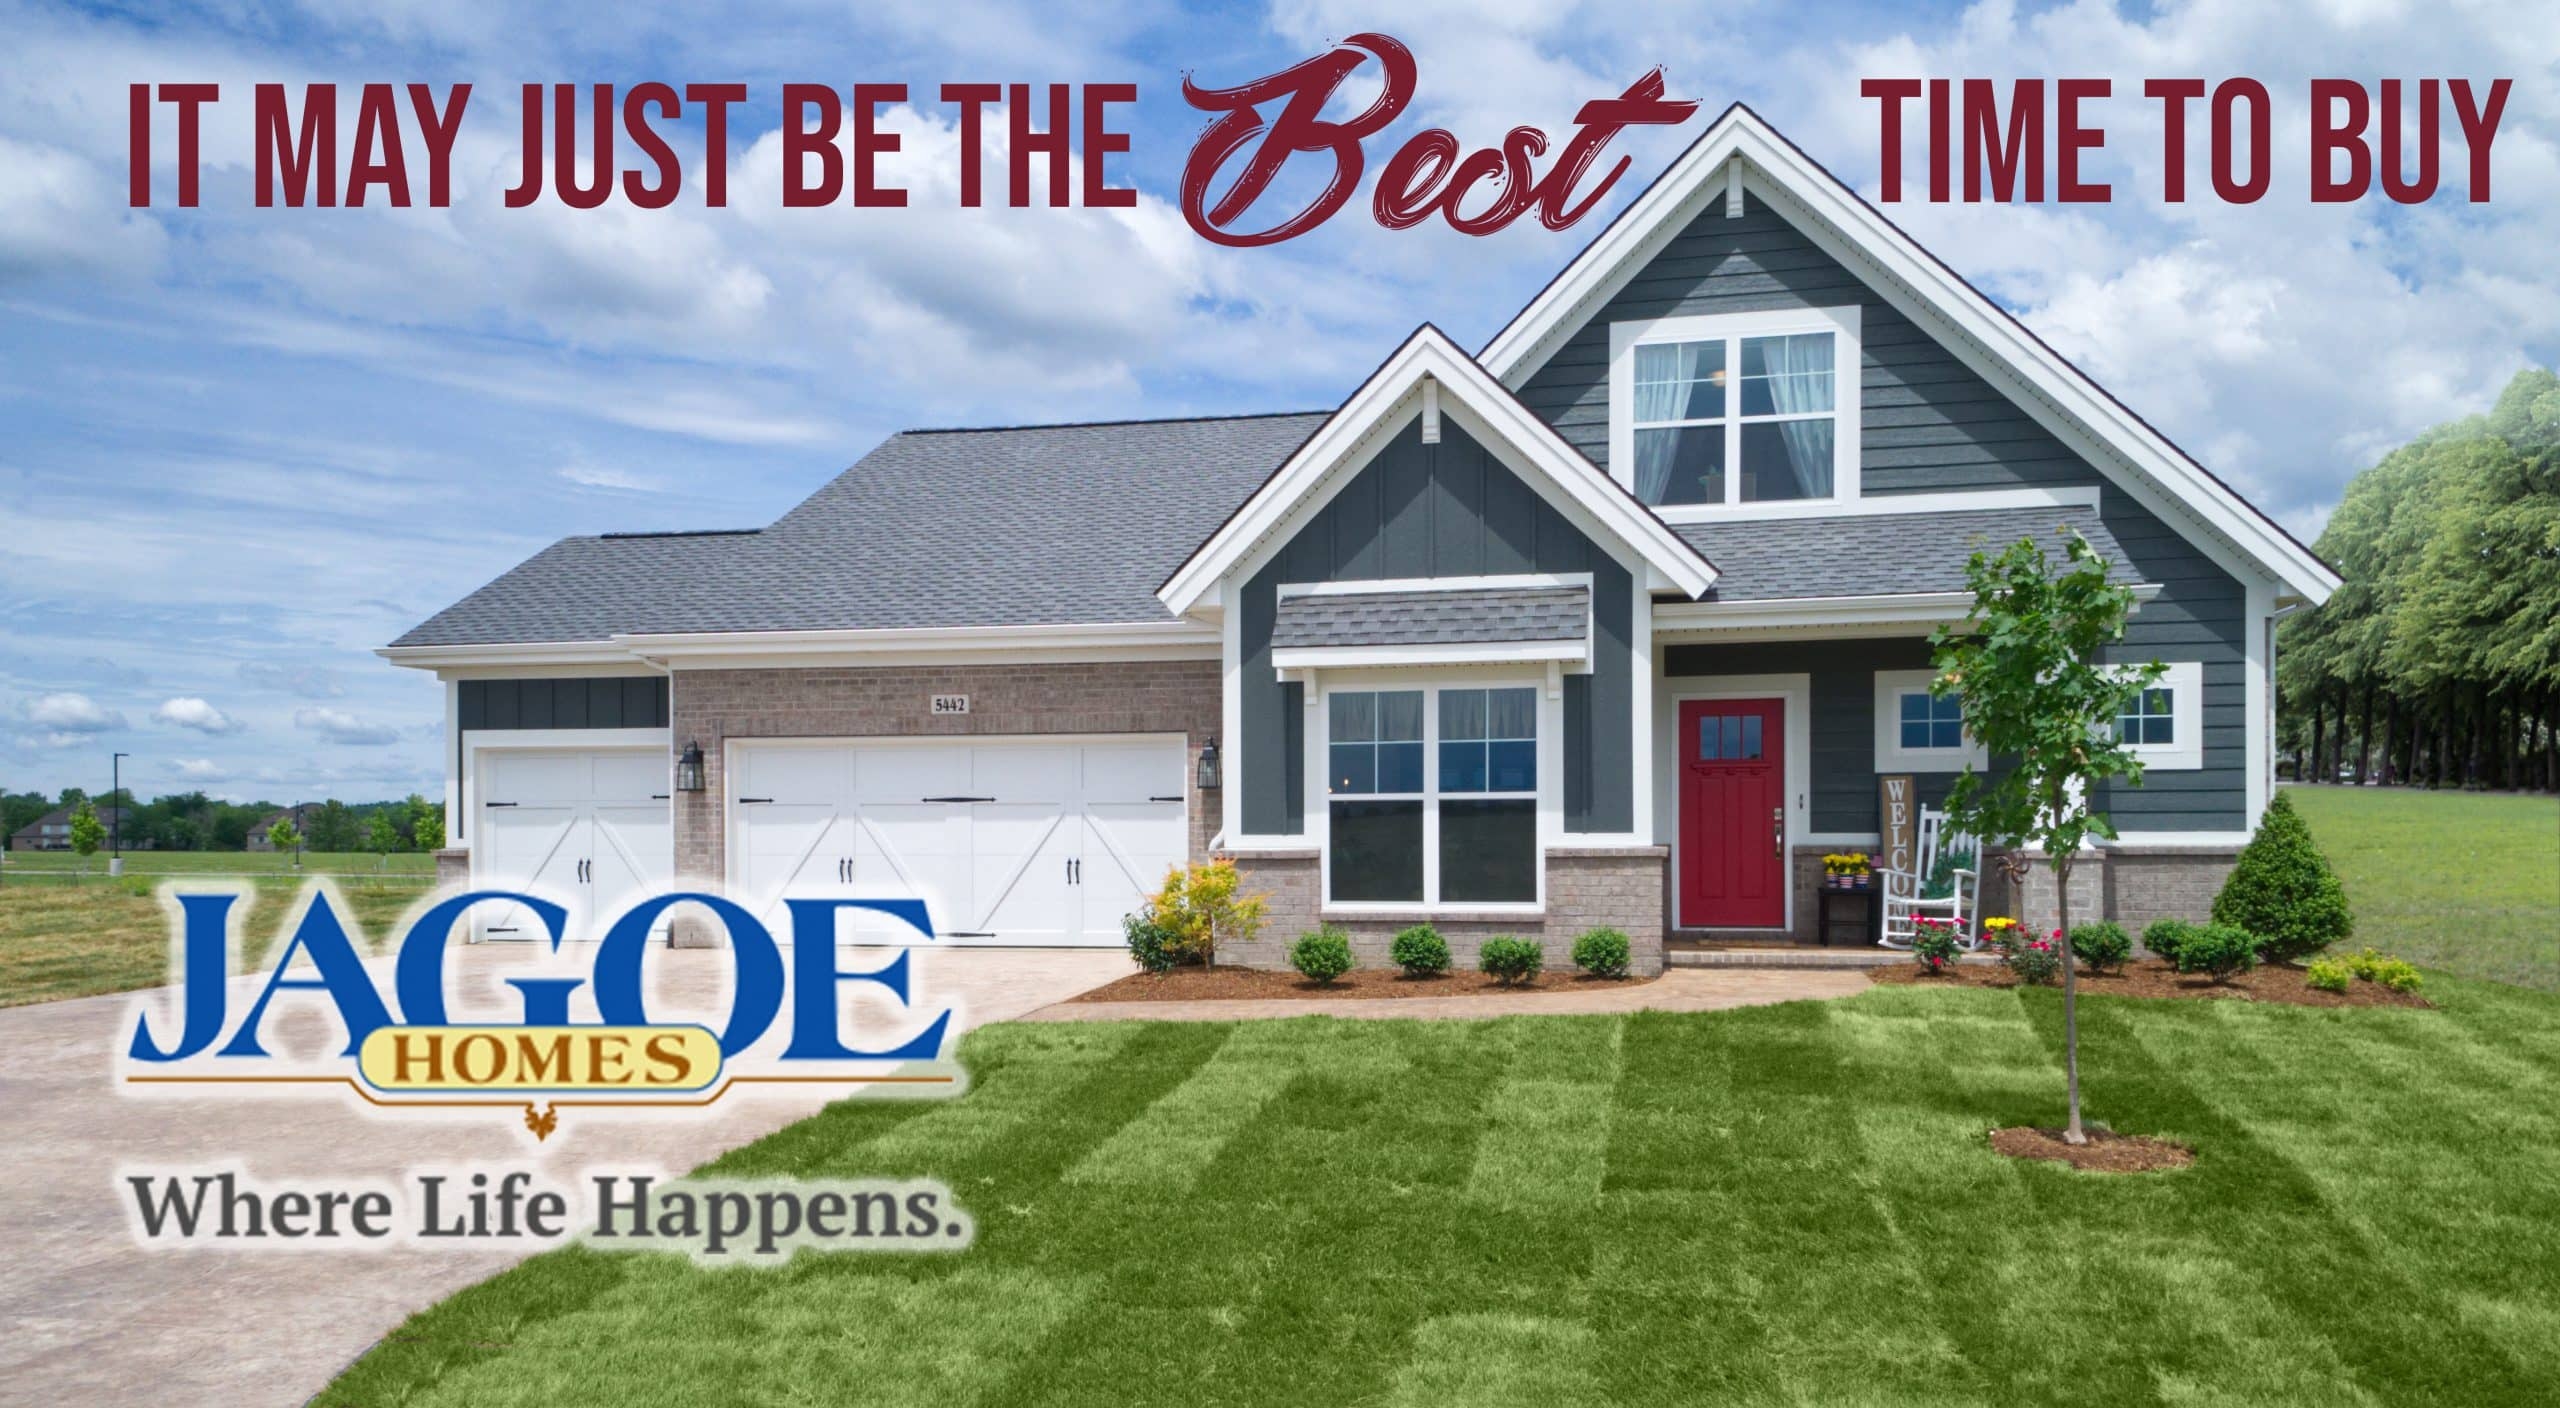 It May Just Be the Best Time to Buy Jagoe Homes